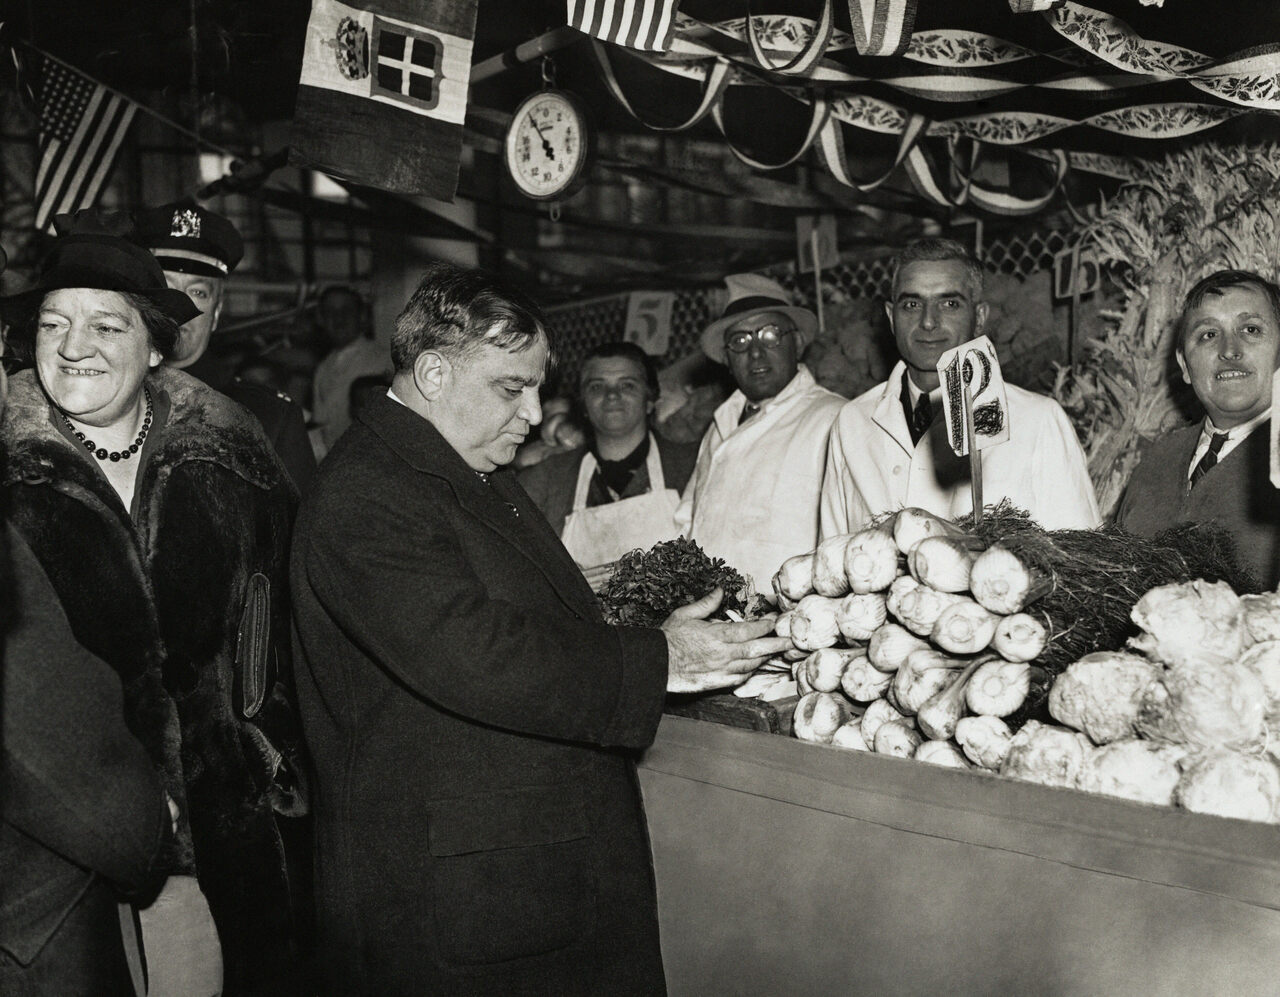 Mayor Fiorello LaGuardia examines produce at a stall several years after his artichoke war.